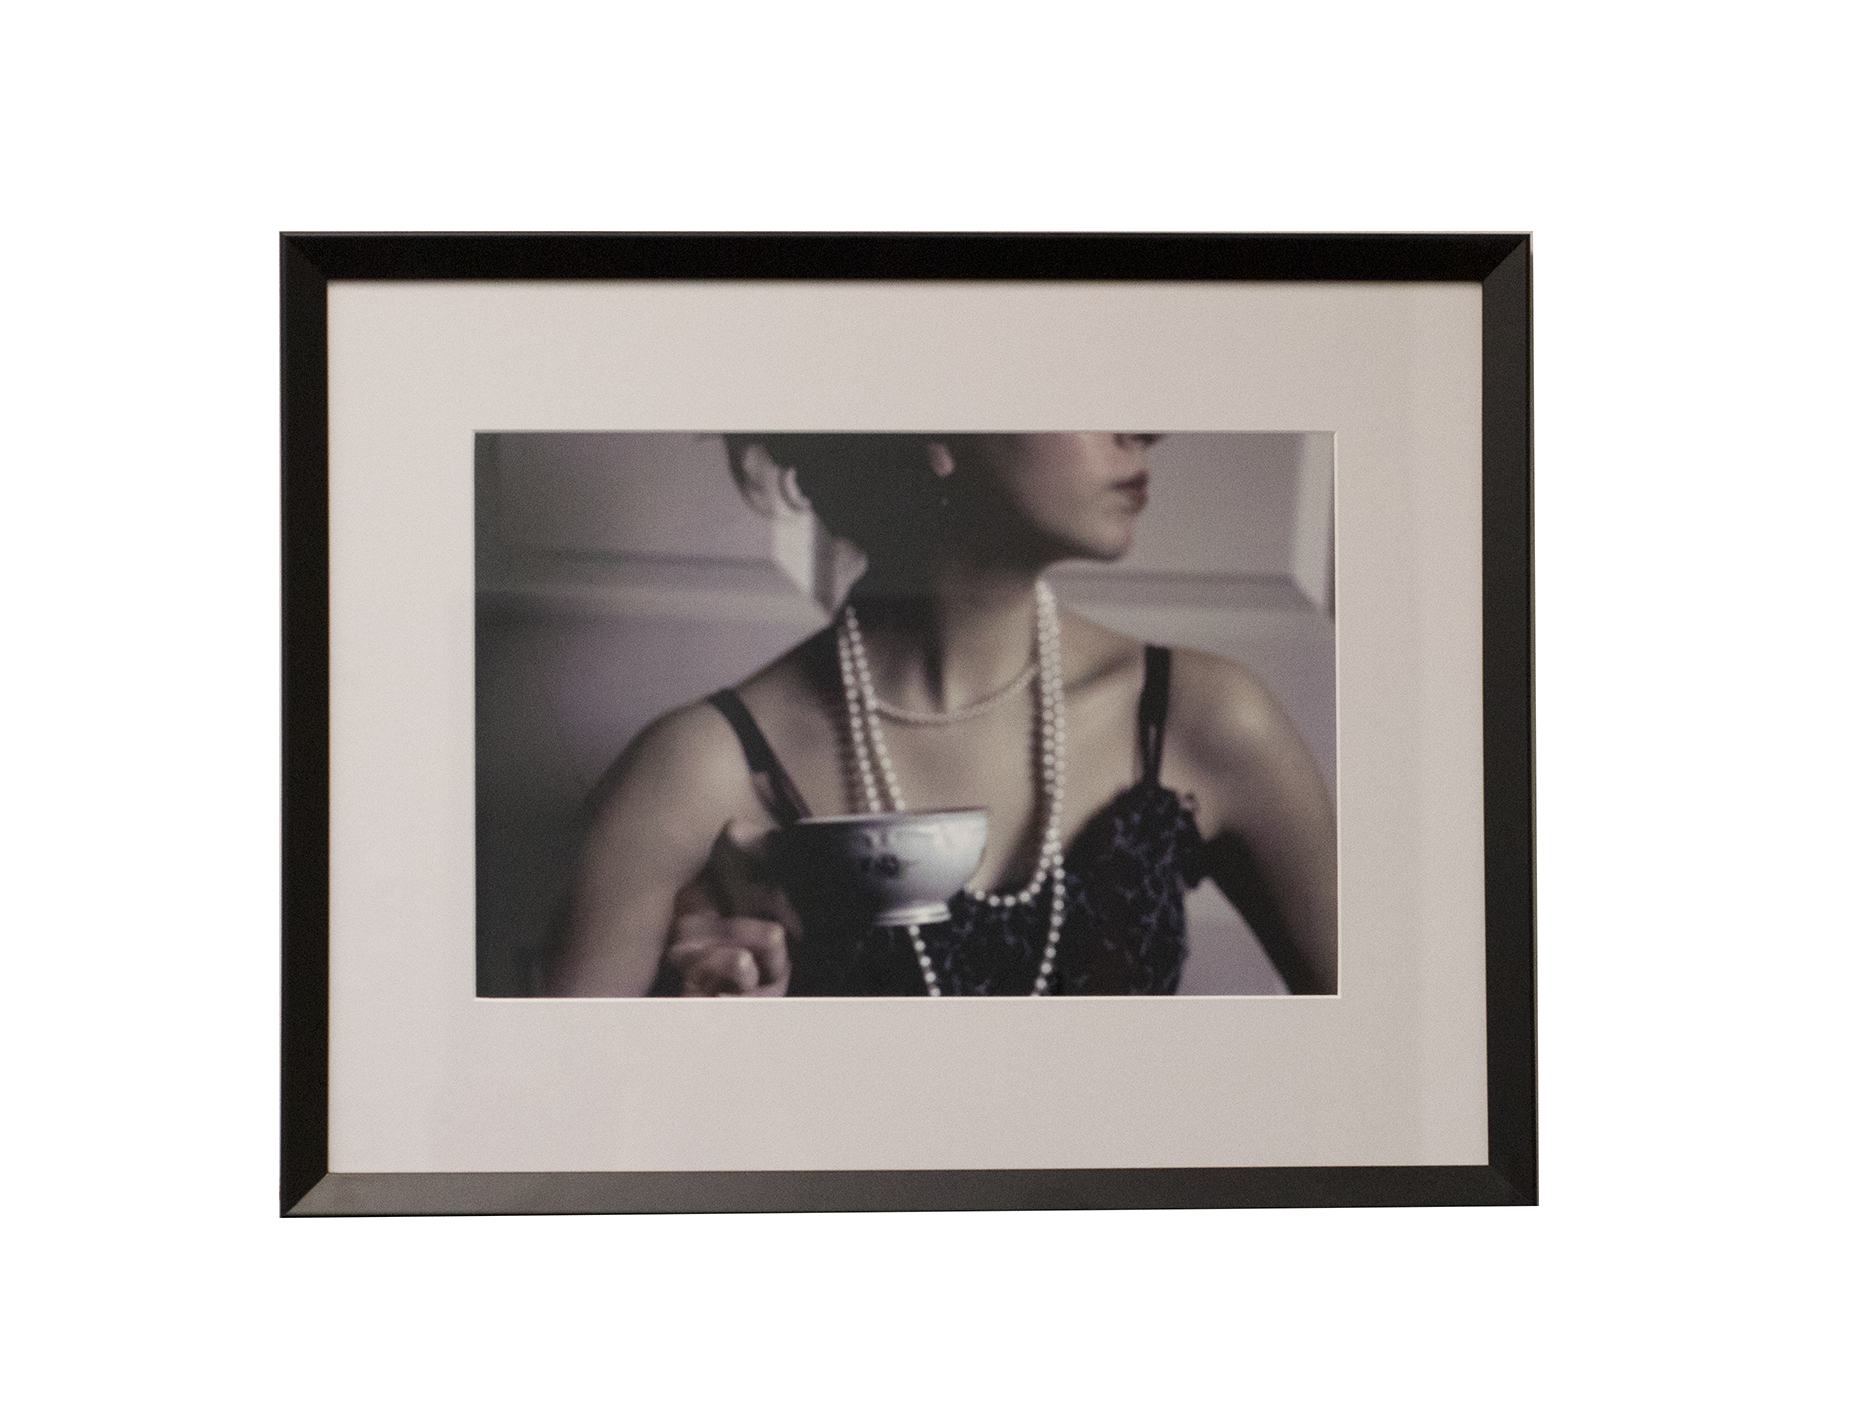 photo of a woman with a tea cup